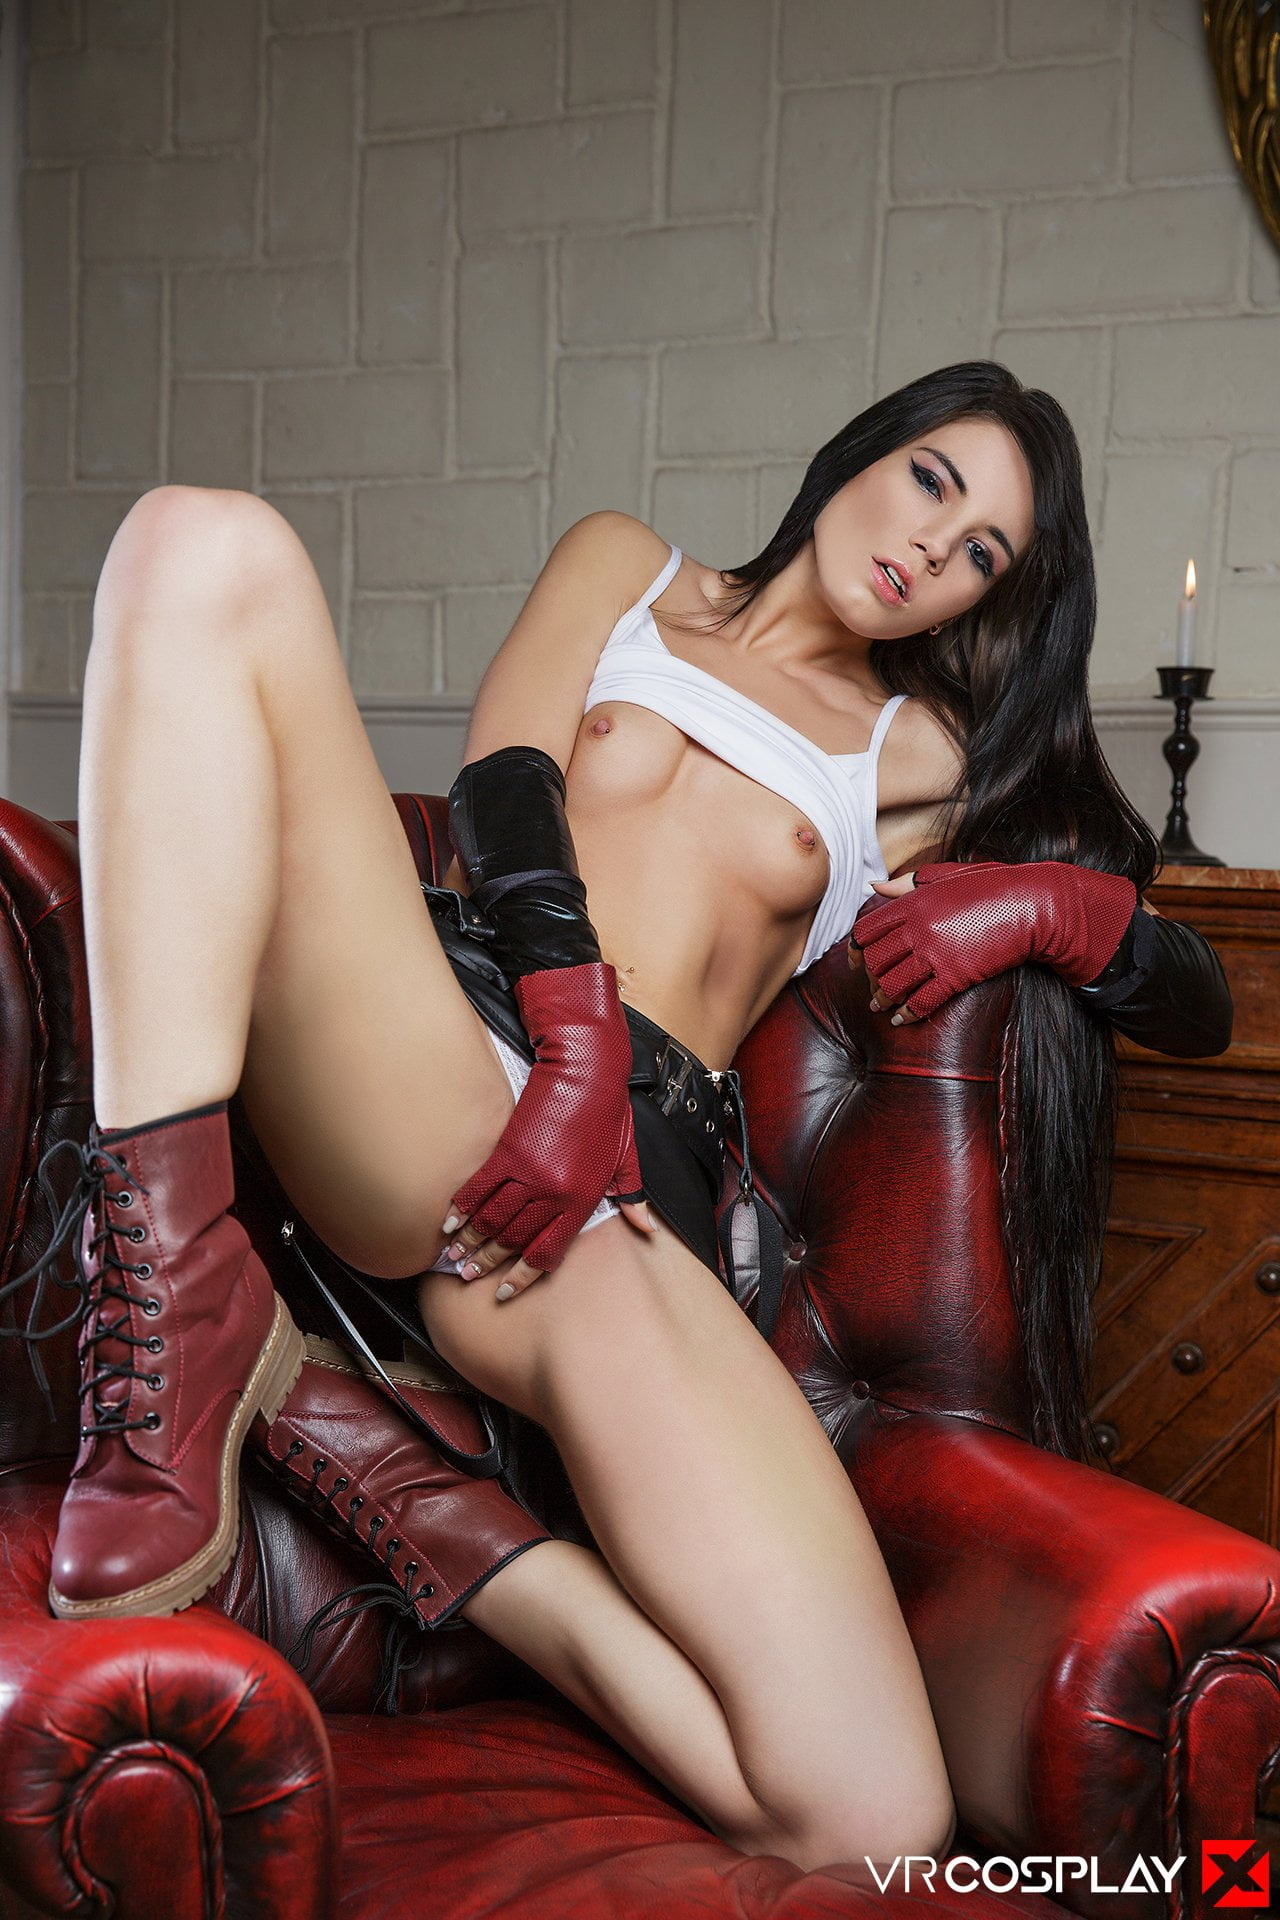 tifa-cosplay-porn-video-smiling-amateur-man